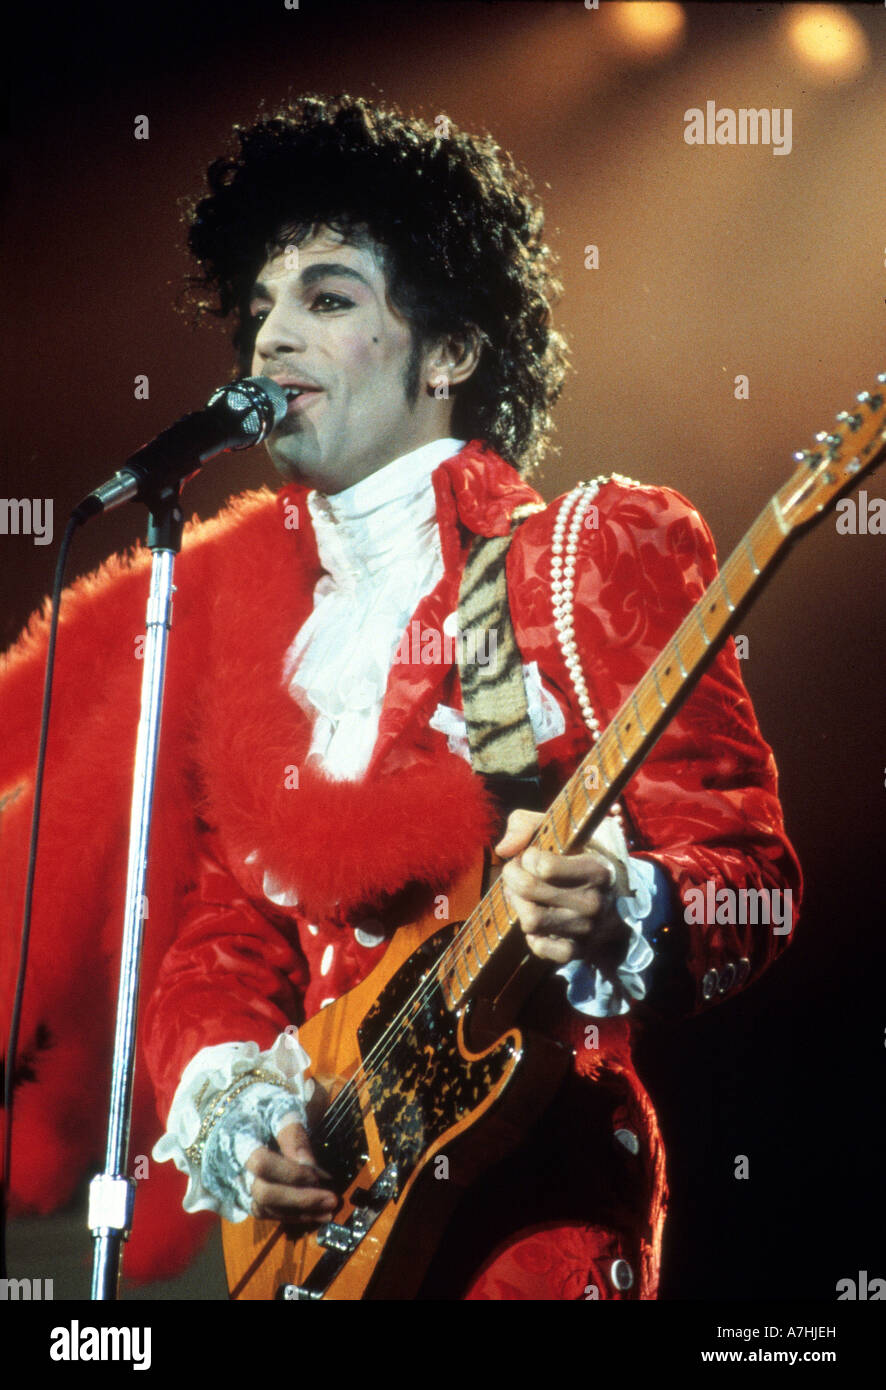 PRINCE  US musician in 1985 - Stock Image